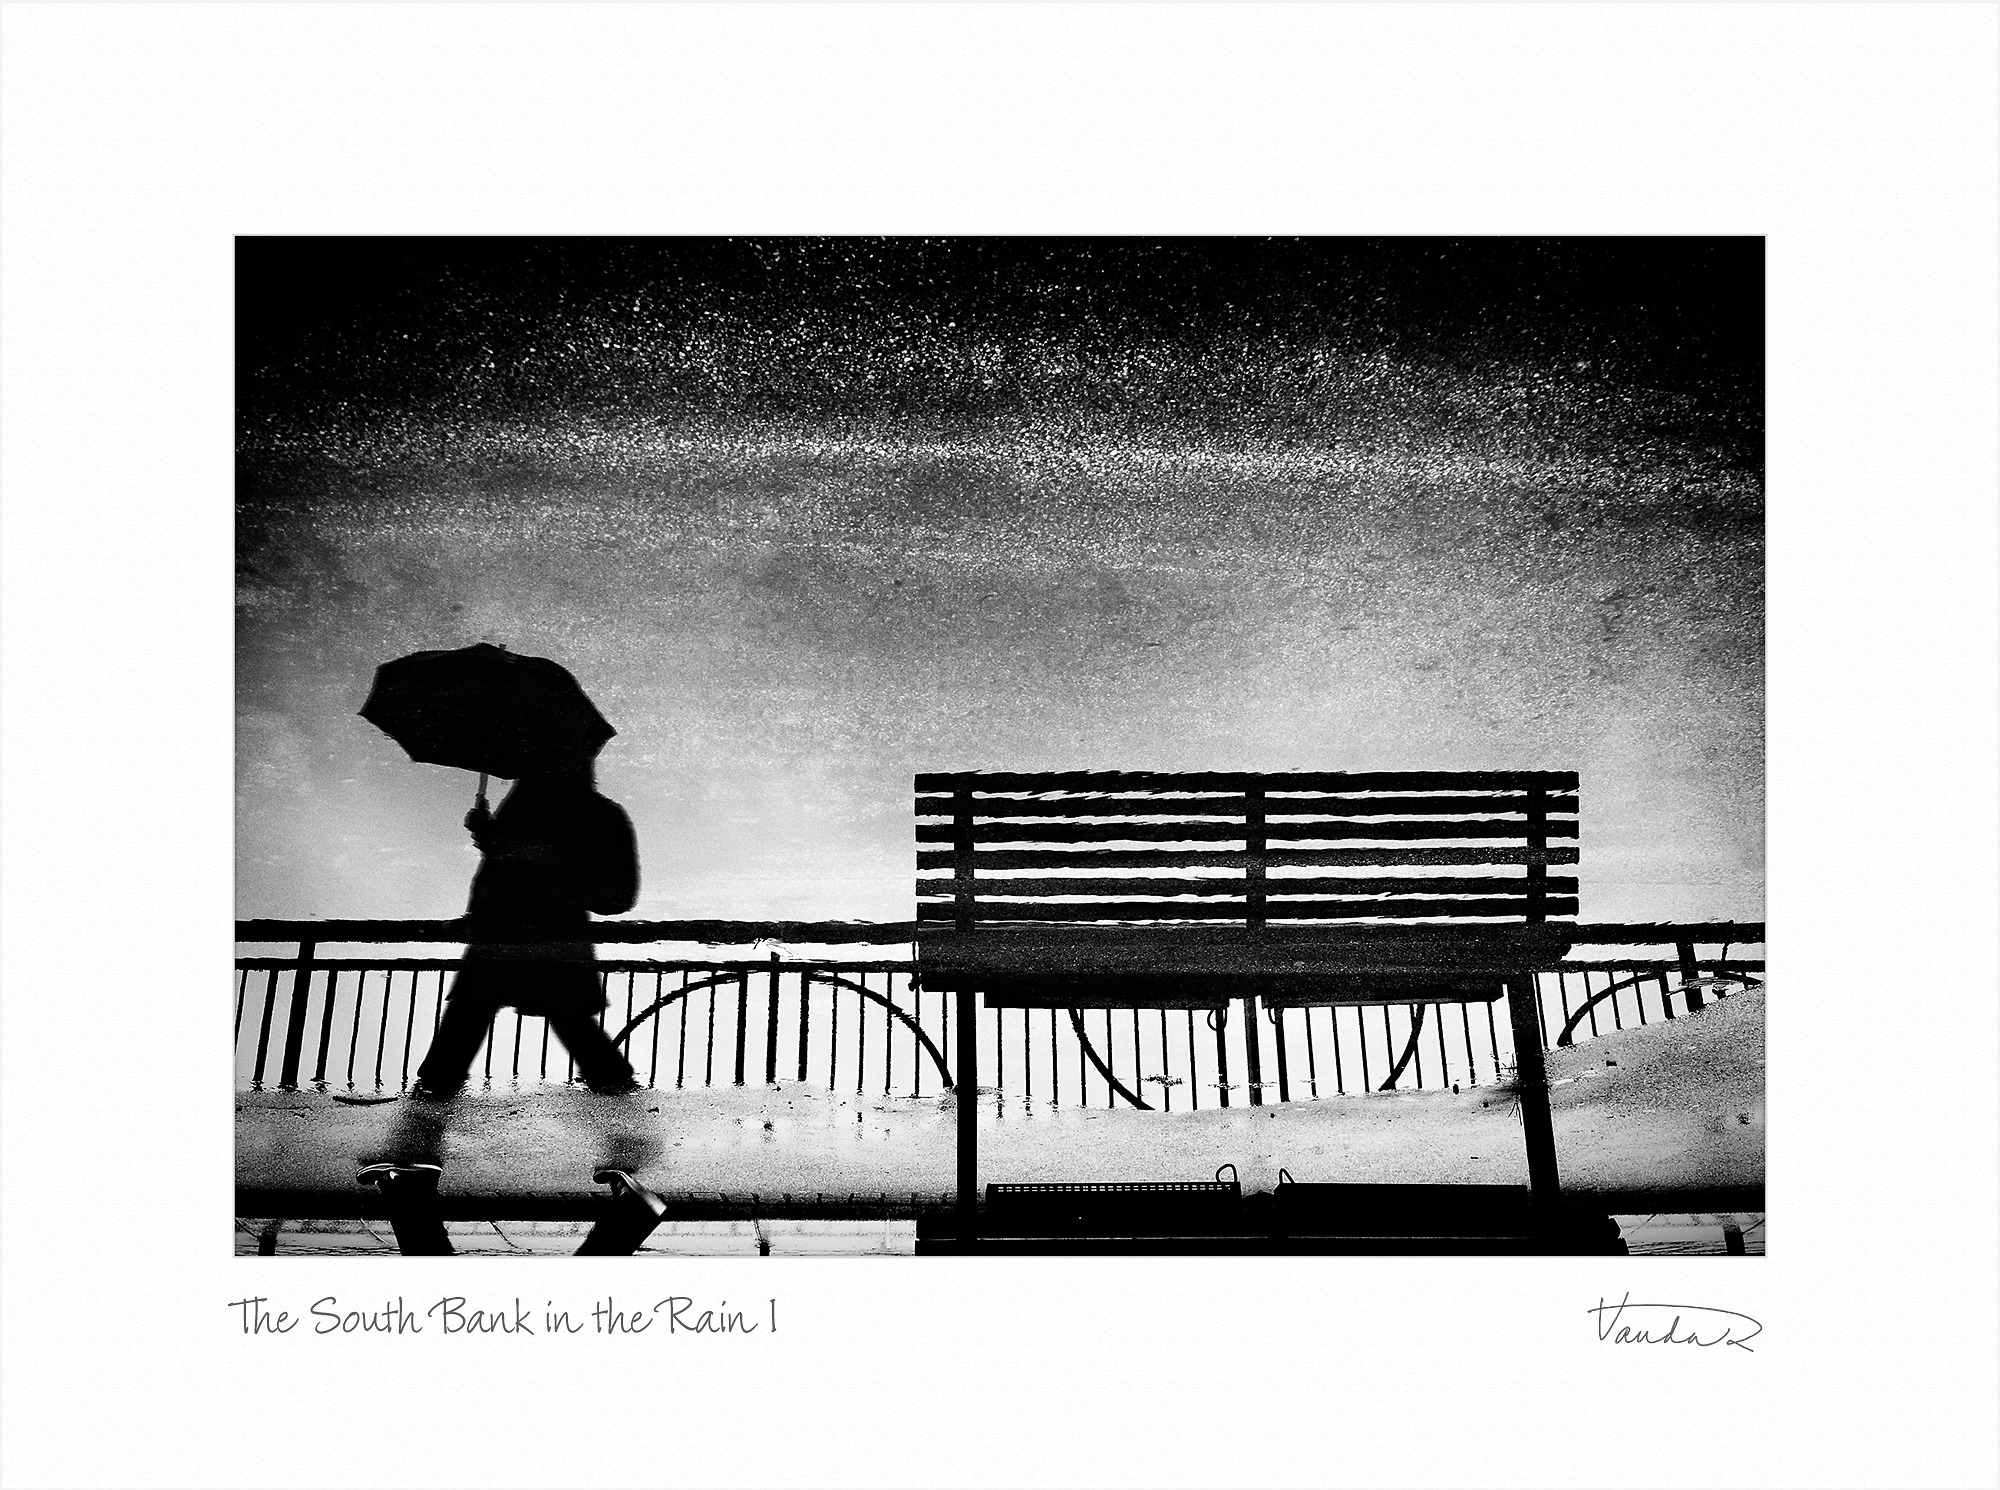 The South Bank in the Rain I